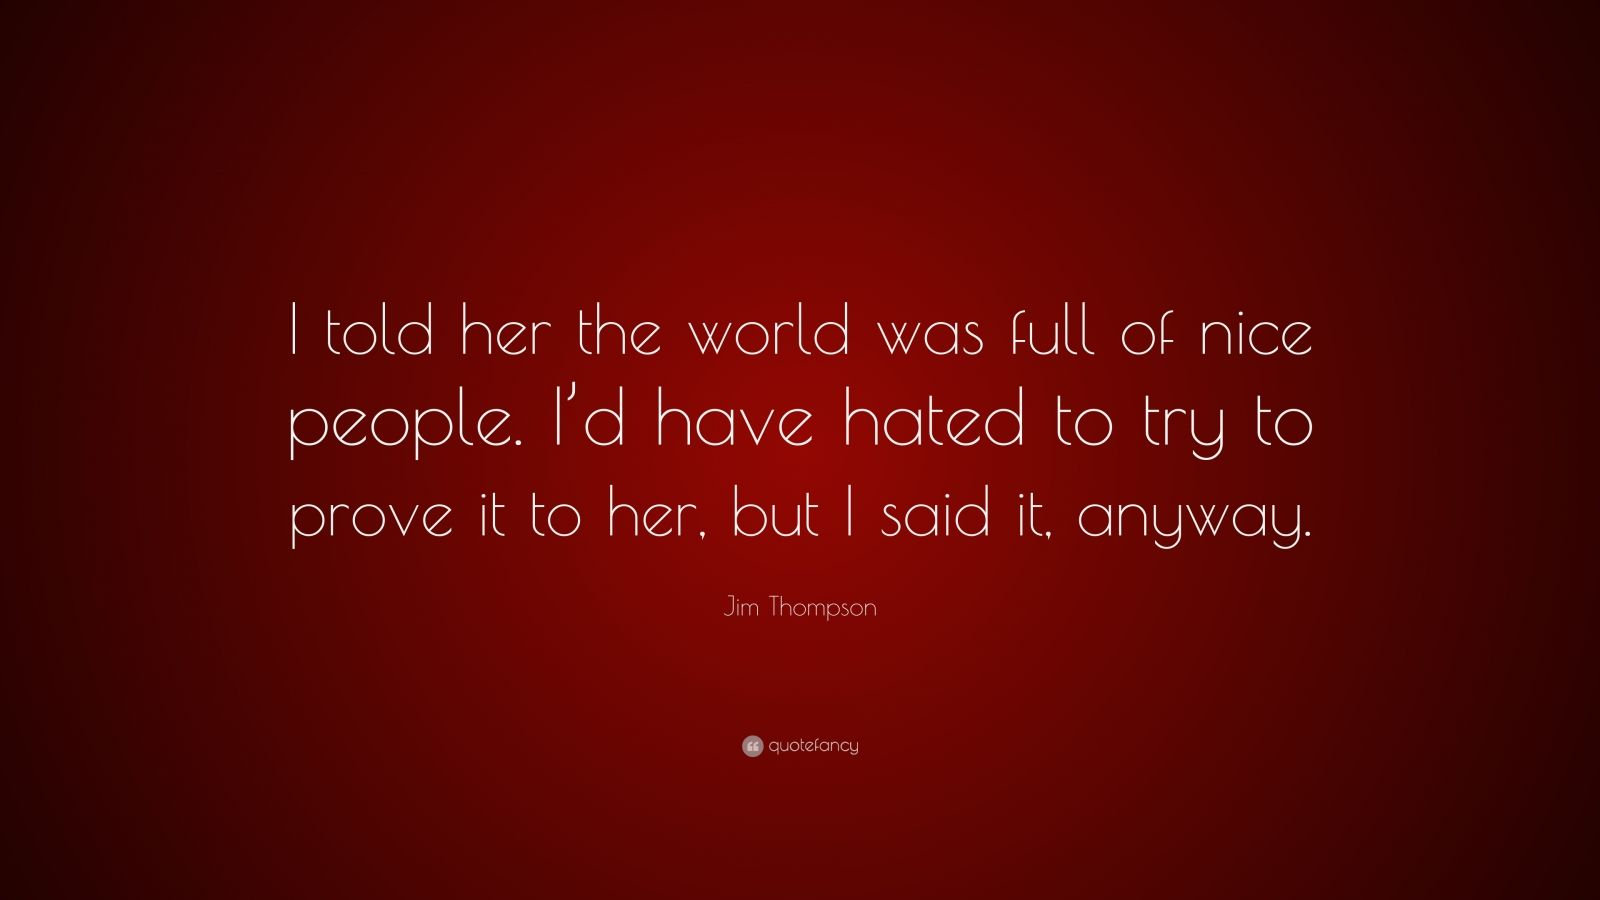 "Jim Thompson Quote: ""I told her the world was full of nice people. I'd have hated to try to prove it to her, but I said it, anyway."""